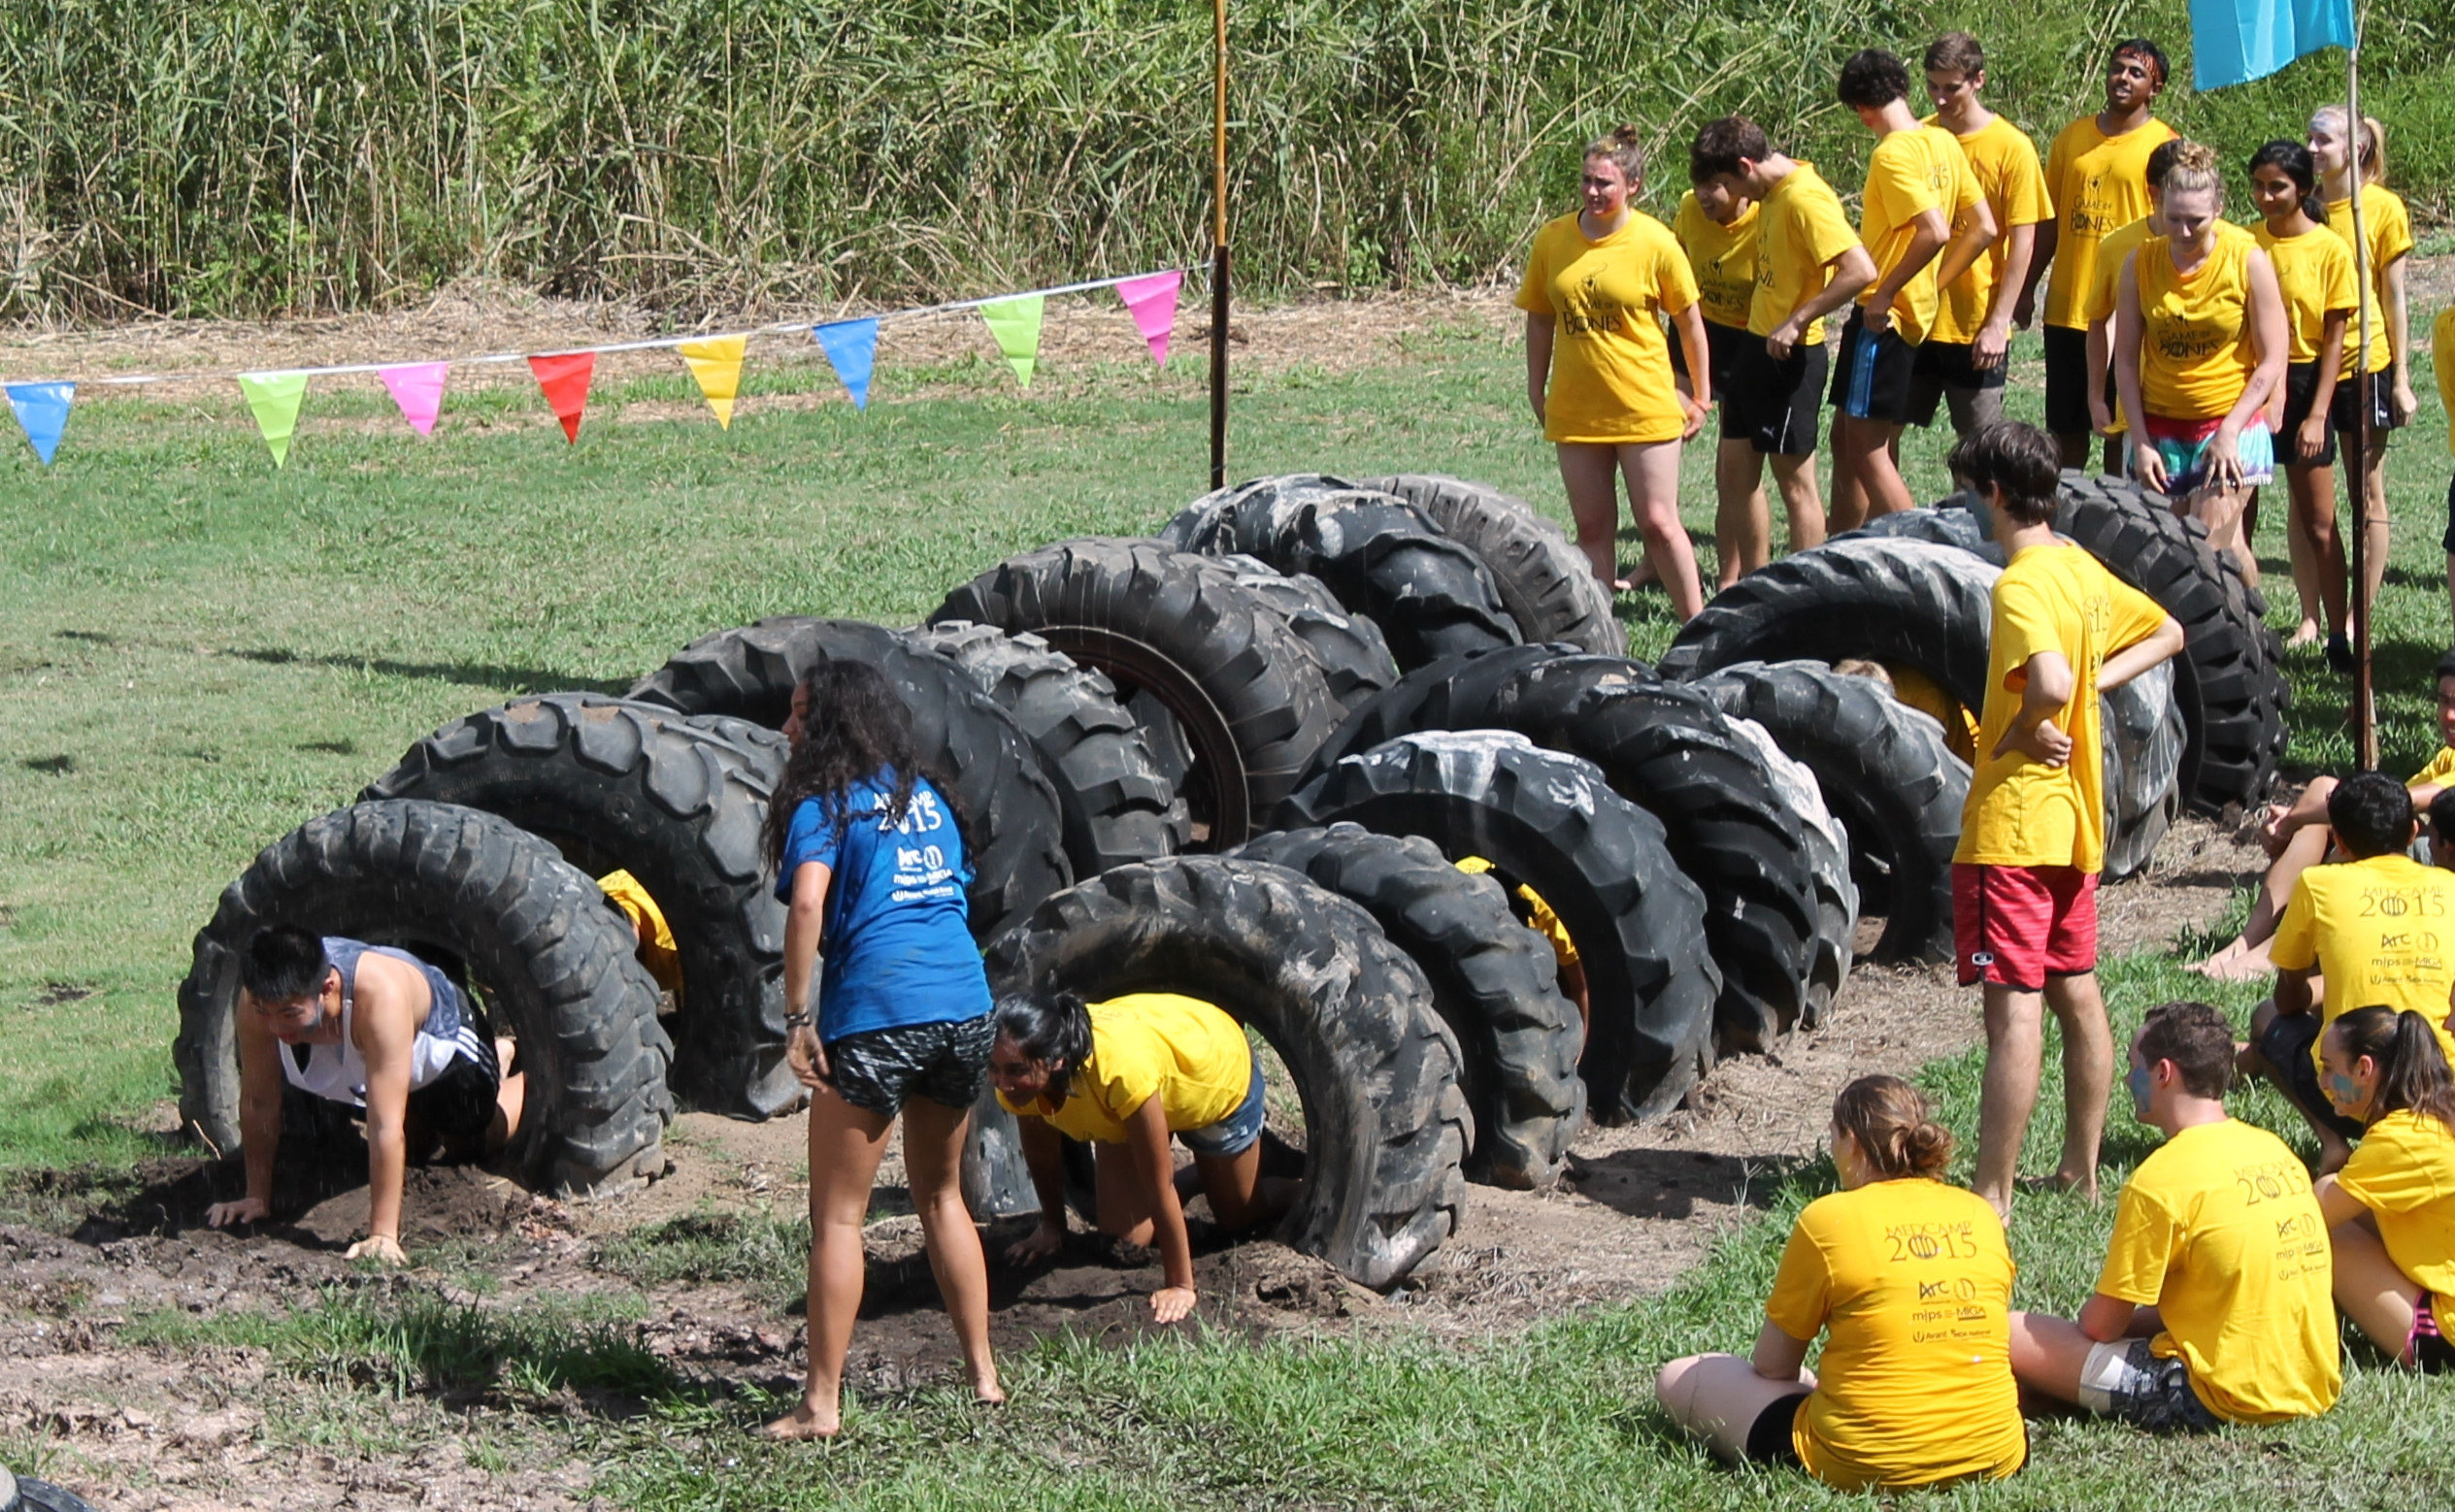 Giant Tyre Mud Mania Challenge